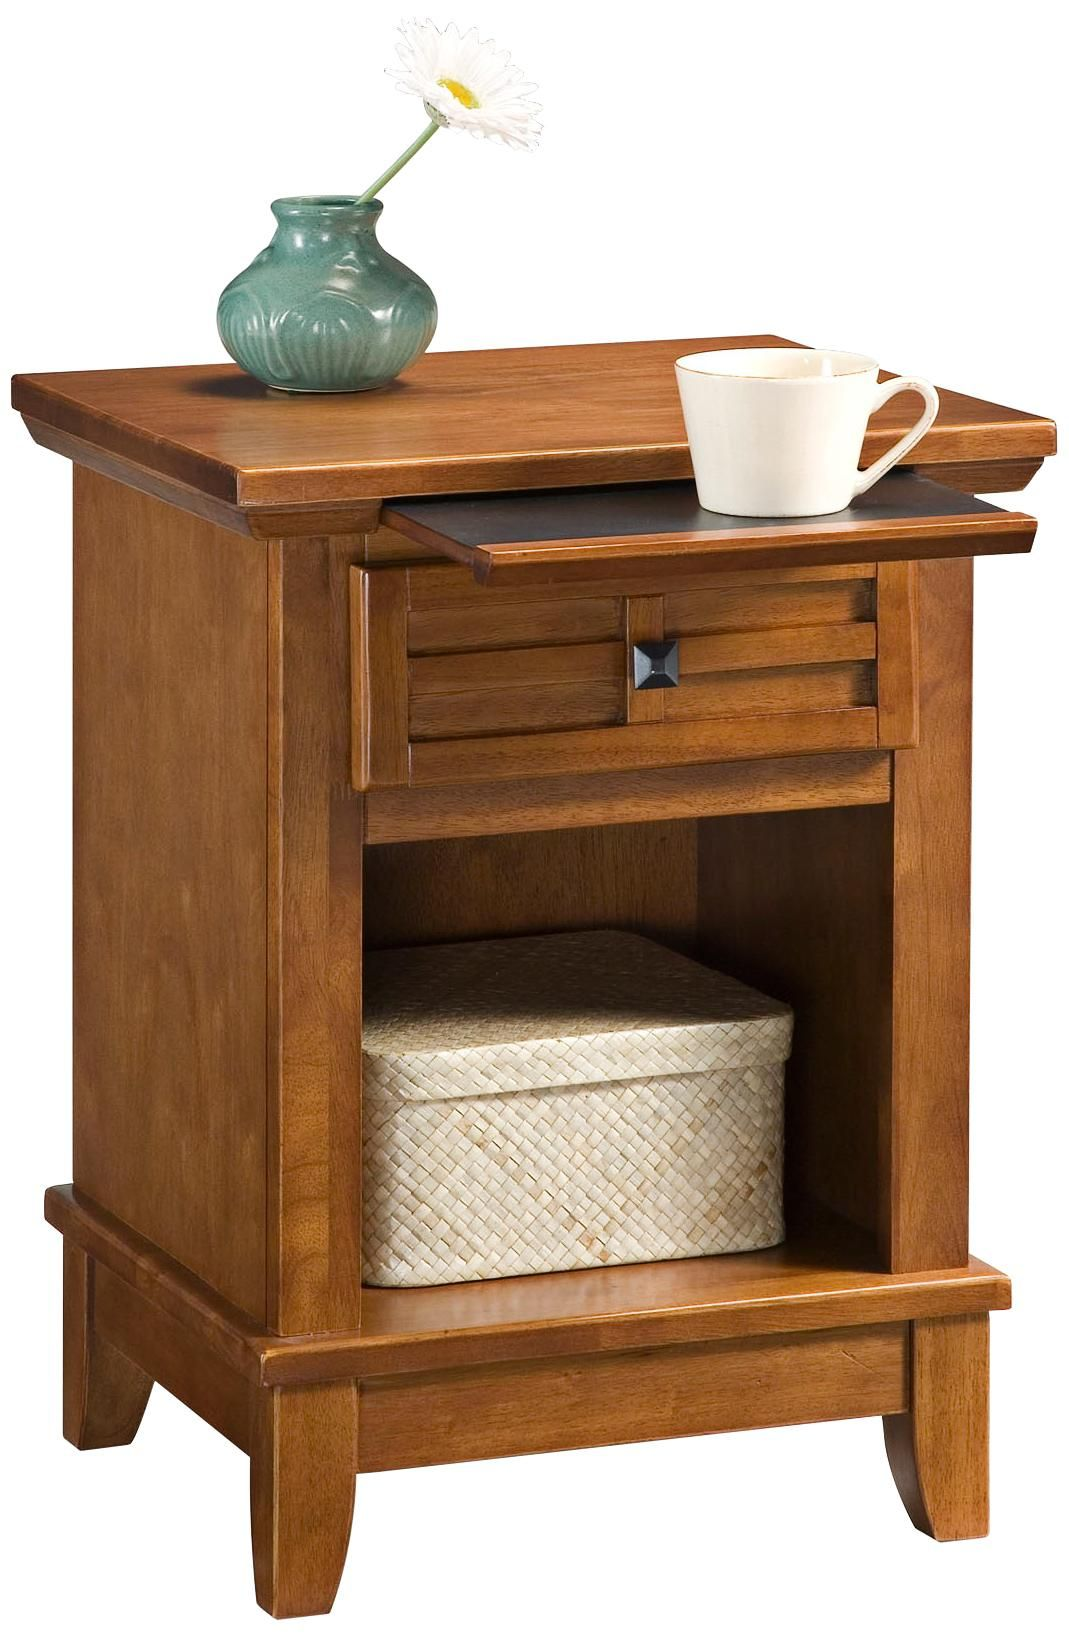 Arts And Craft Oak Lattice Pull Out Tray Night Stand   LampsPlus.com